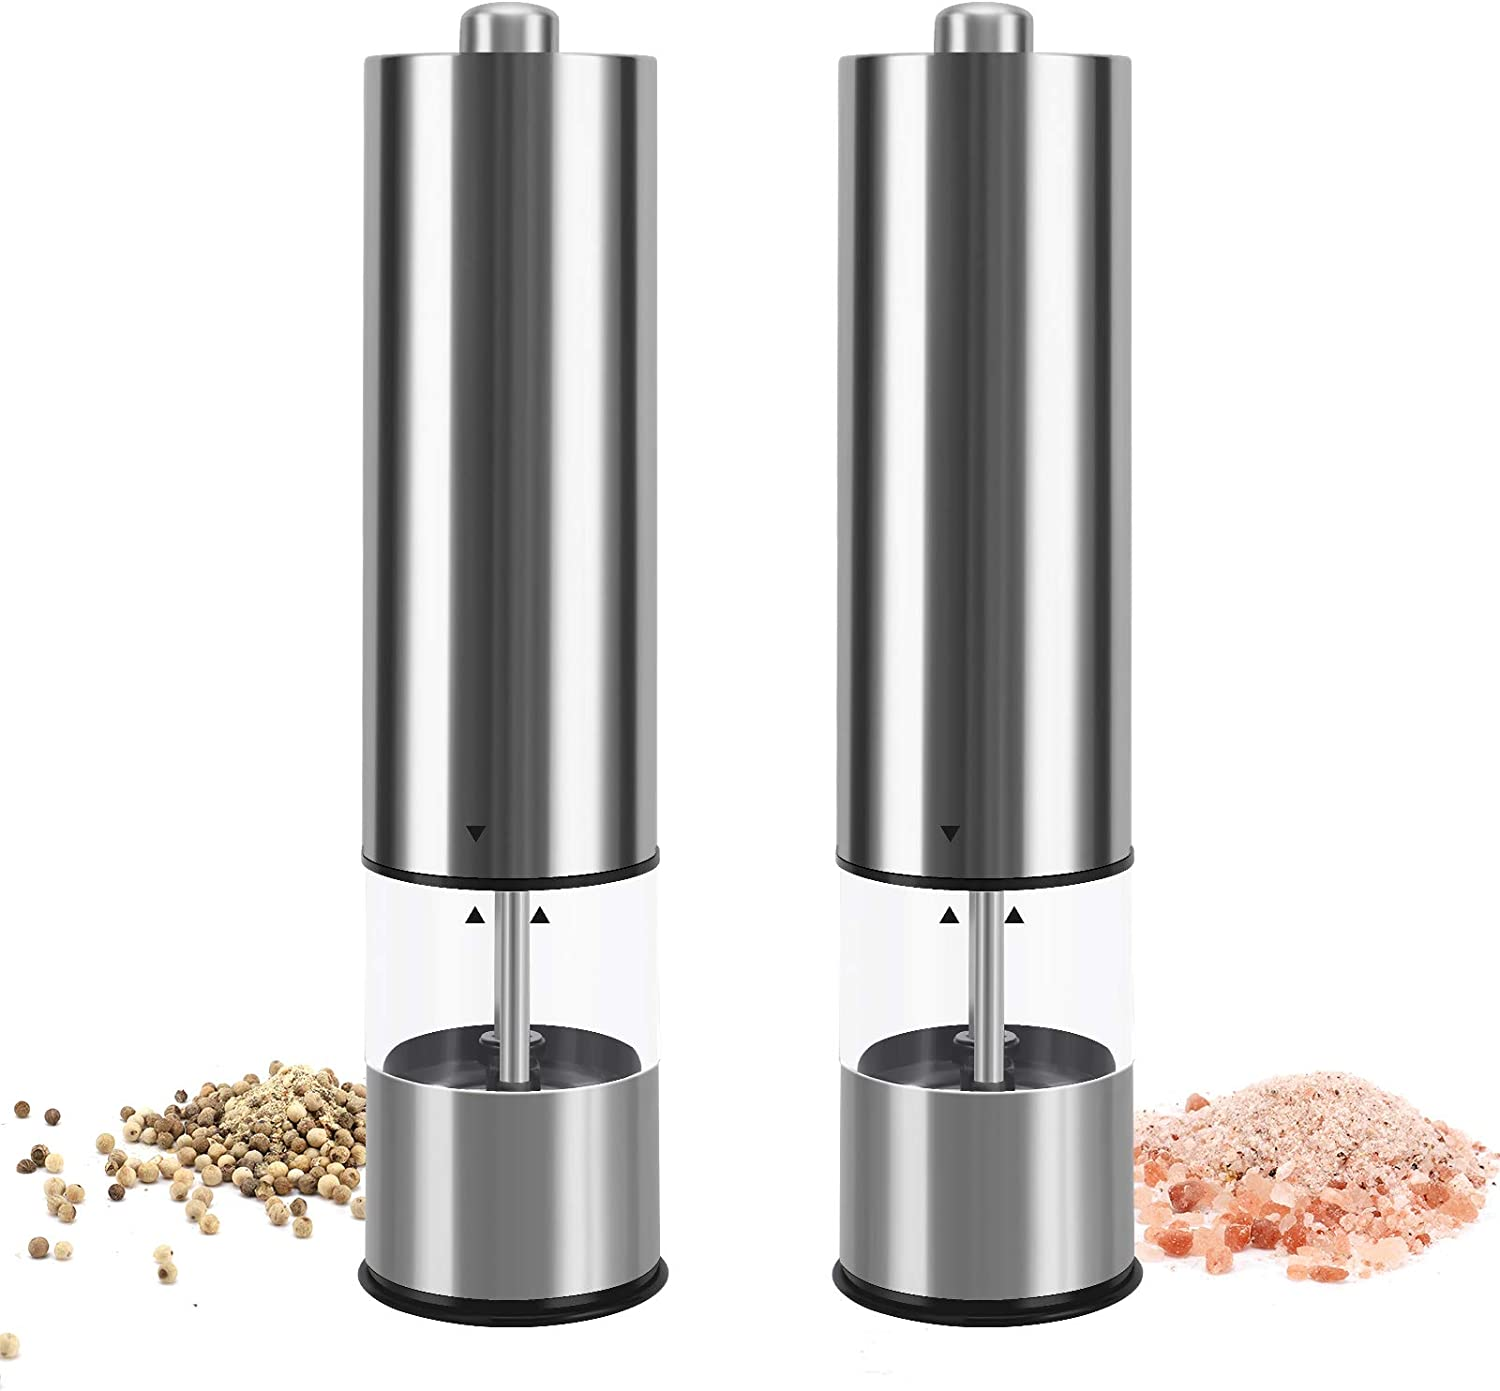 Fufengz Electric Black Pepper Grinder Salt and Pepper Grinders Set Refillable Pepper Mill Battery Powered Stainless Steel Perfume Grinder